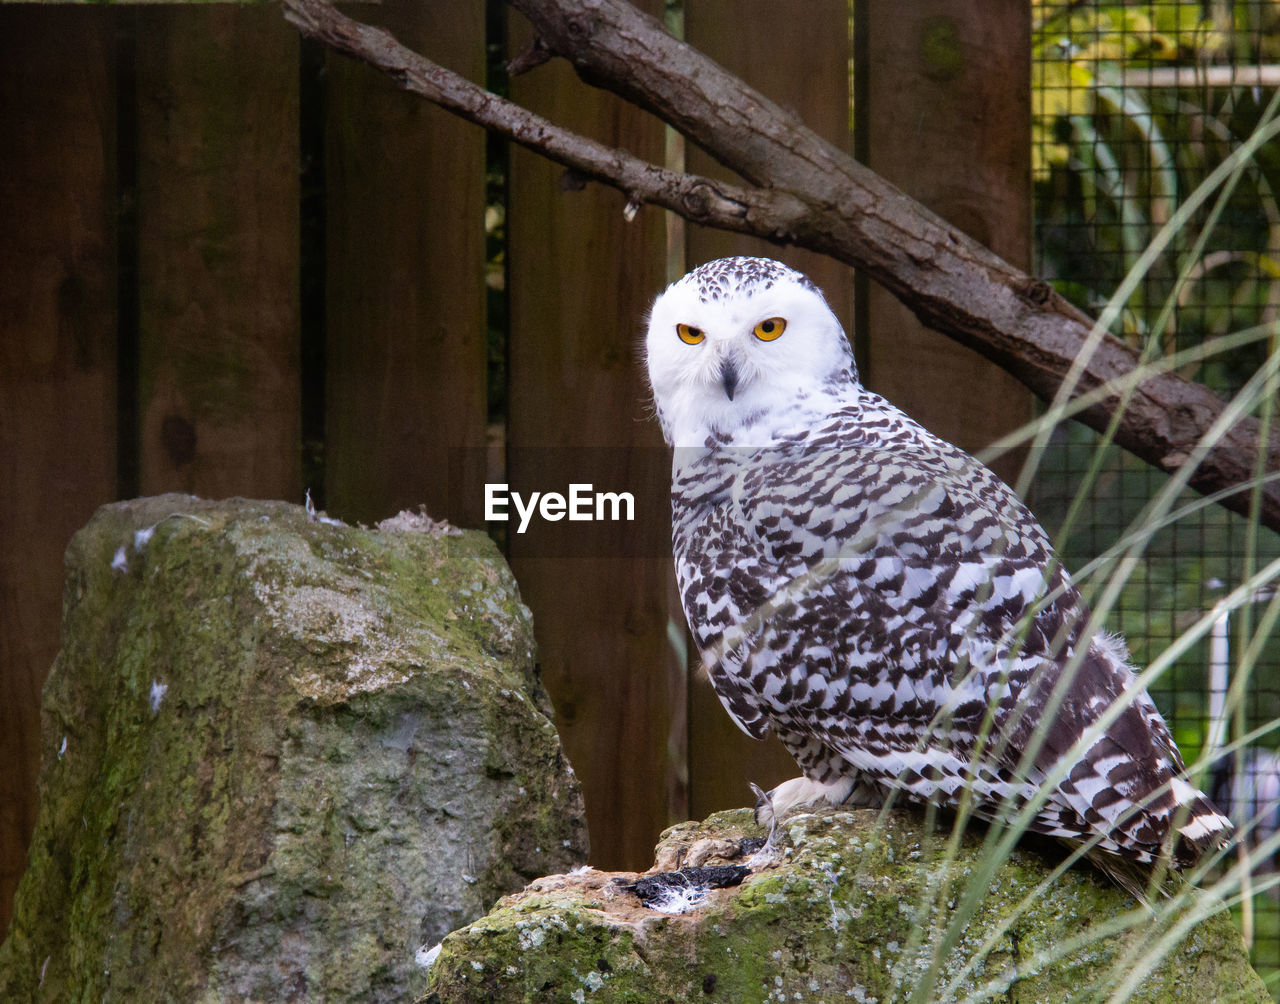 vertebrate, animal, bird, animal themes, animal wildlife, bird of prey, one animal, animals in the wild, perching, owl, no people, day, animals in captivity, nature, looking at camera, portrait, wood - material, fence, barrier, focus on foreground, falcon - bird